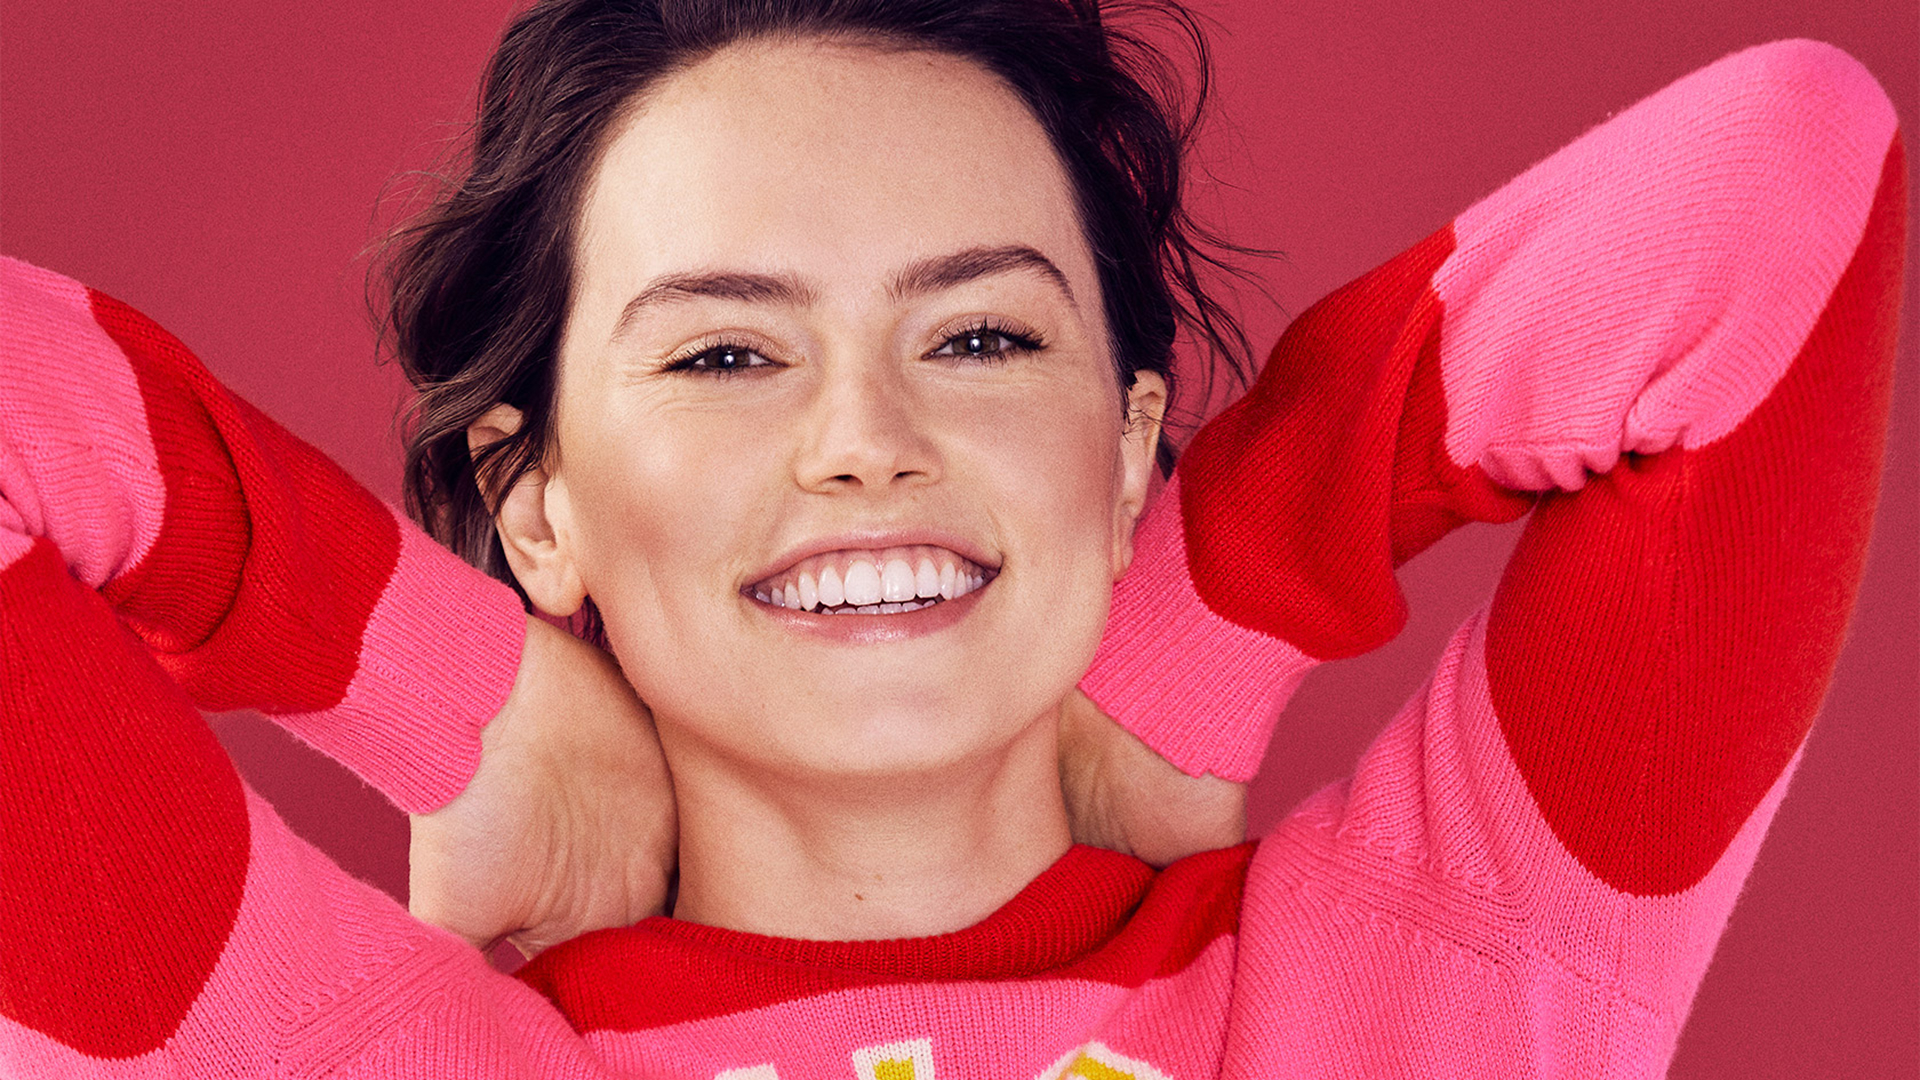 1920x1080 Cute Daisy Ridley 1080p Laptop Full Hd Wallpaper Hd Celebrities 4k Wallpapers Images Photos And Background